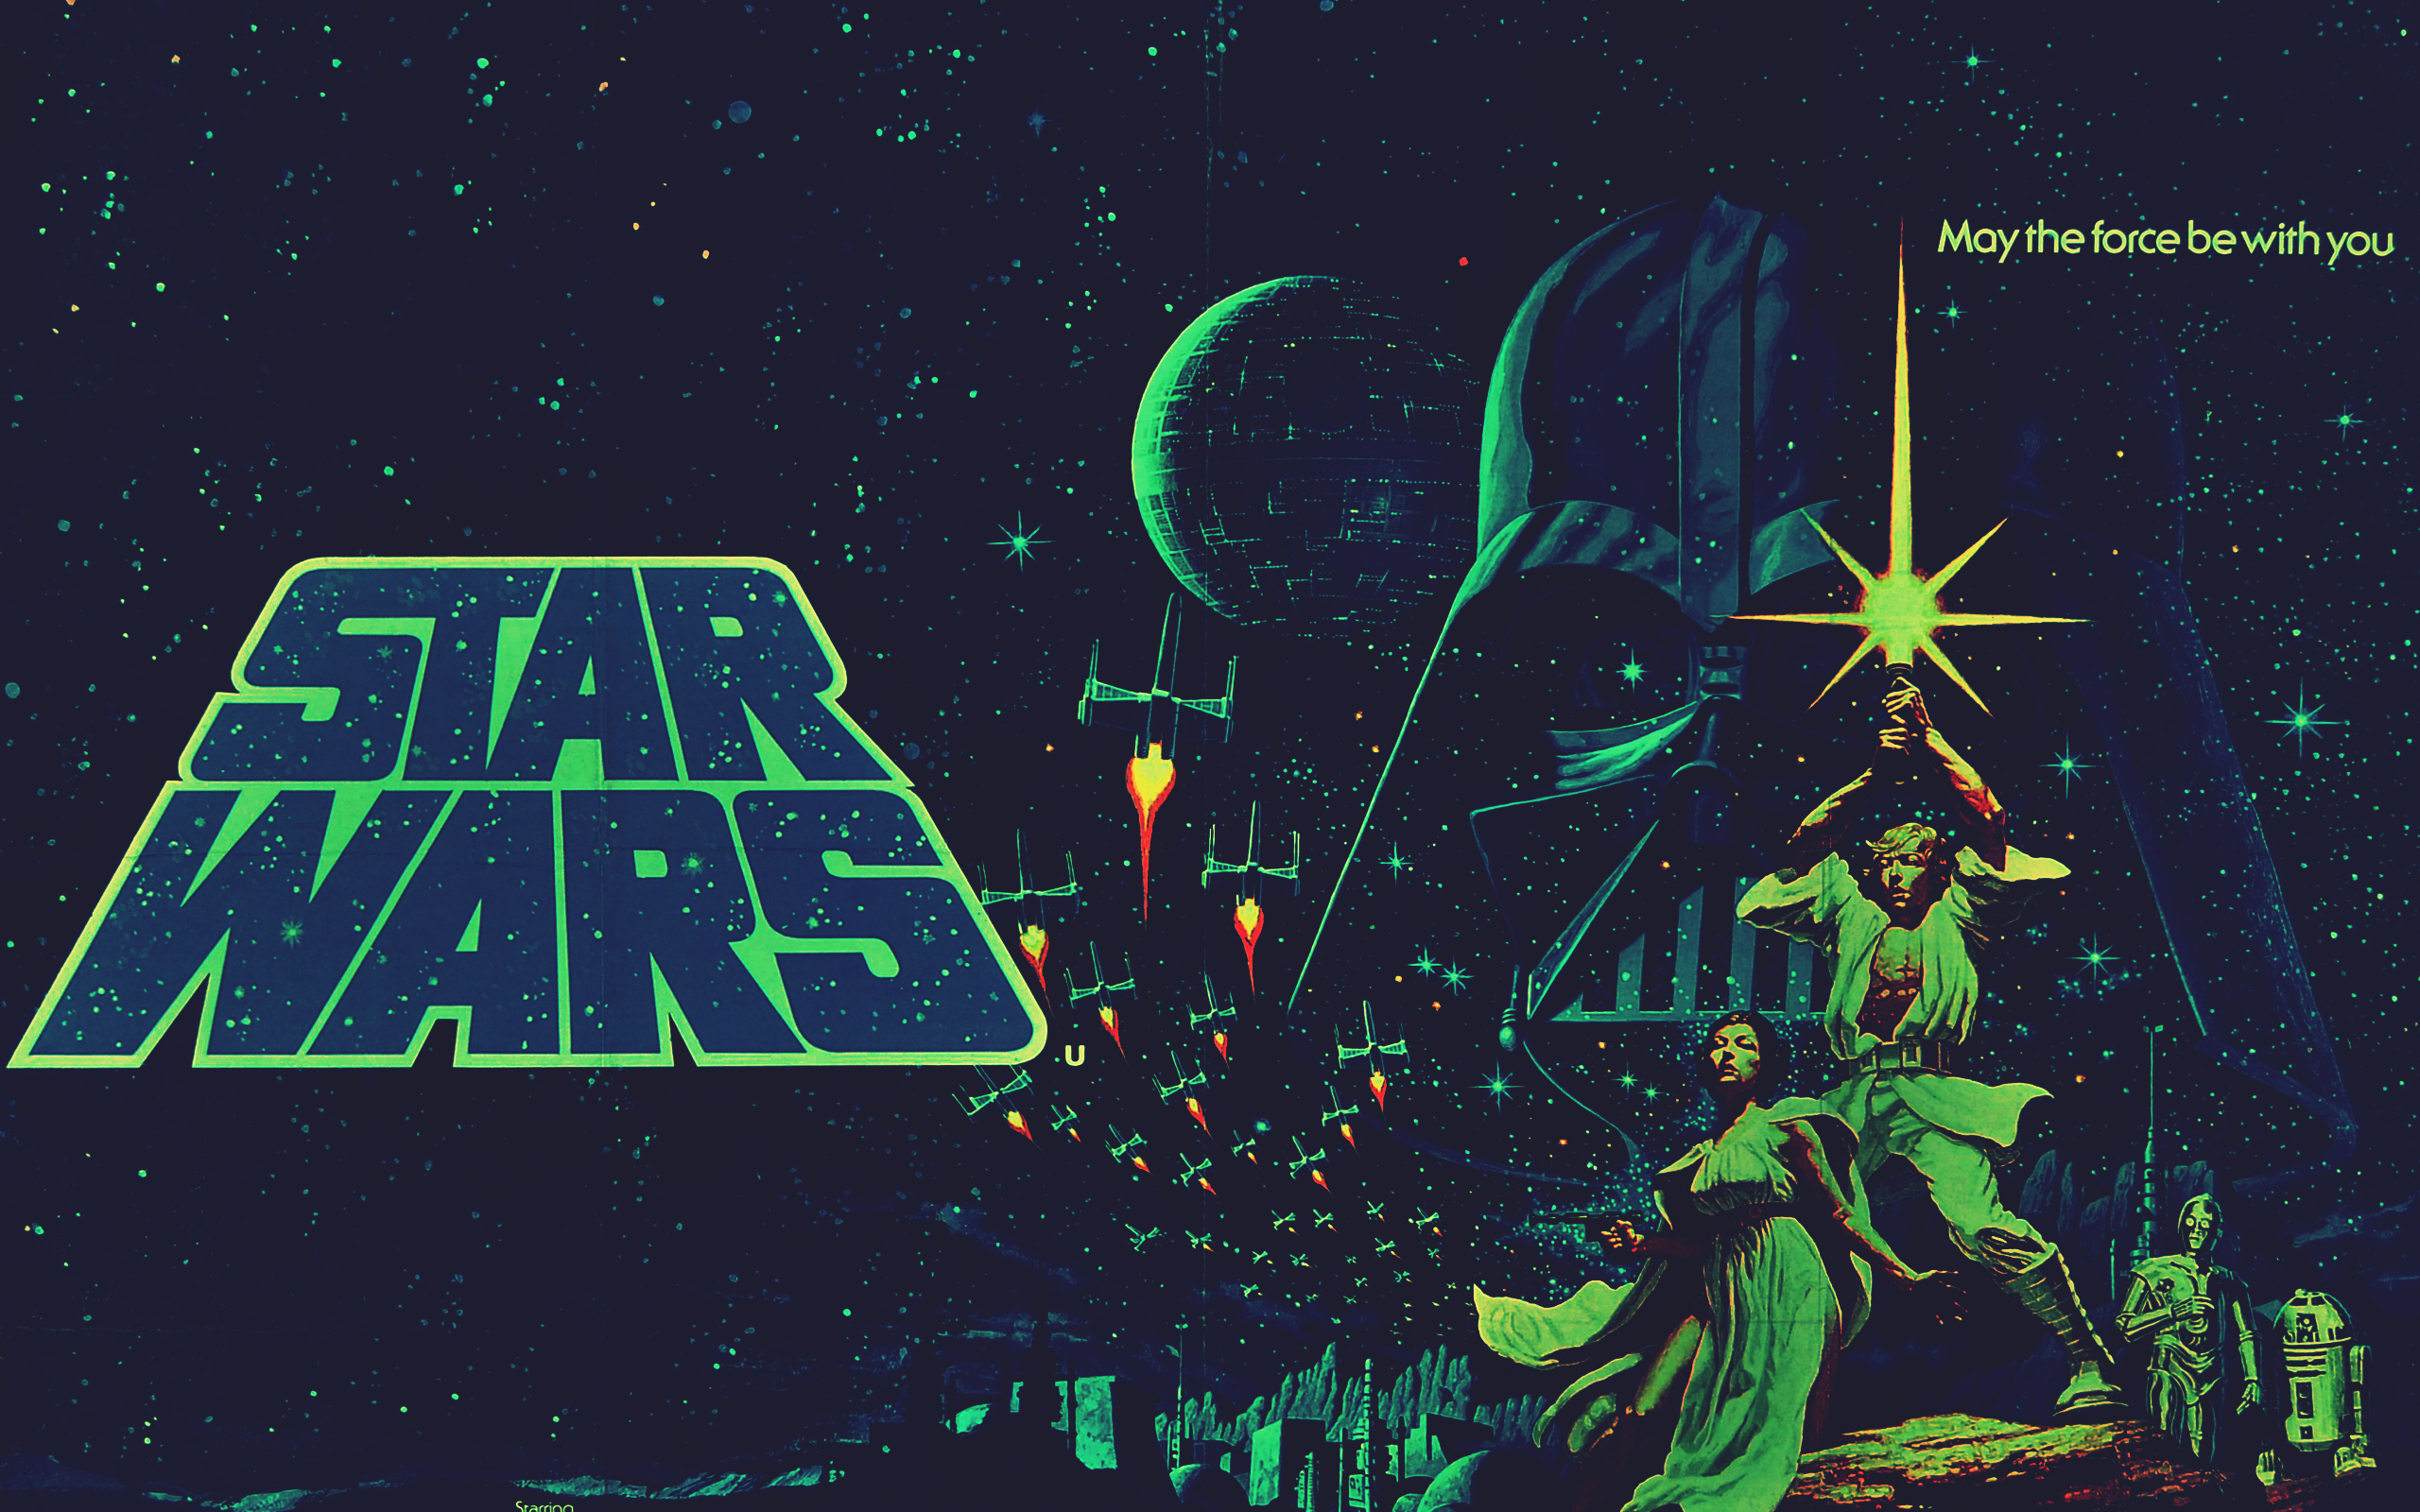 Star Wars Episode IV A New Hope HD Wallpaper Background